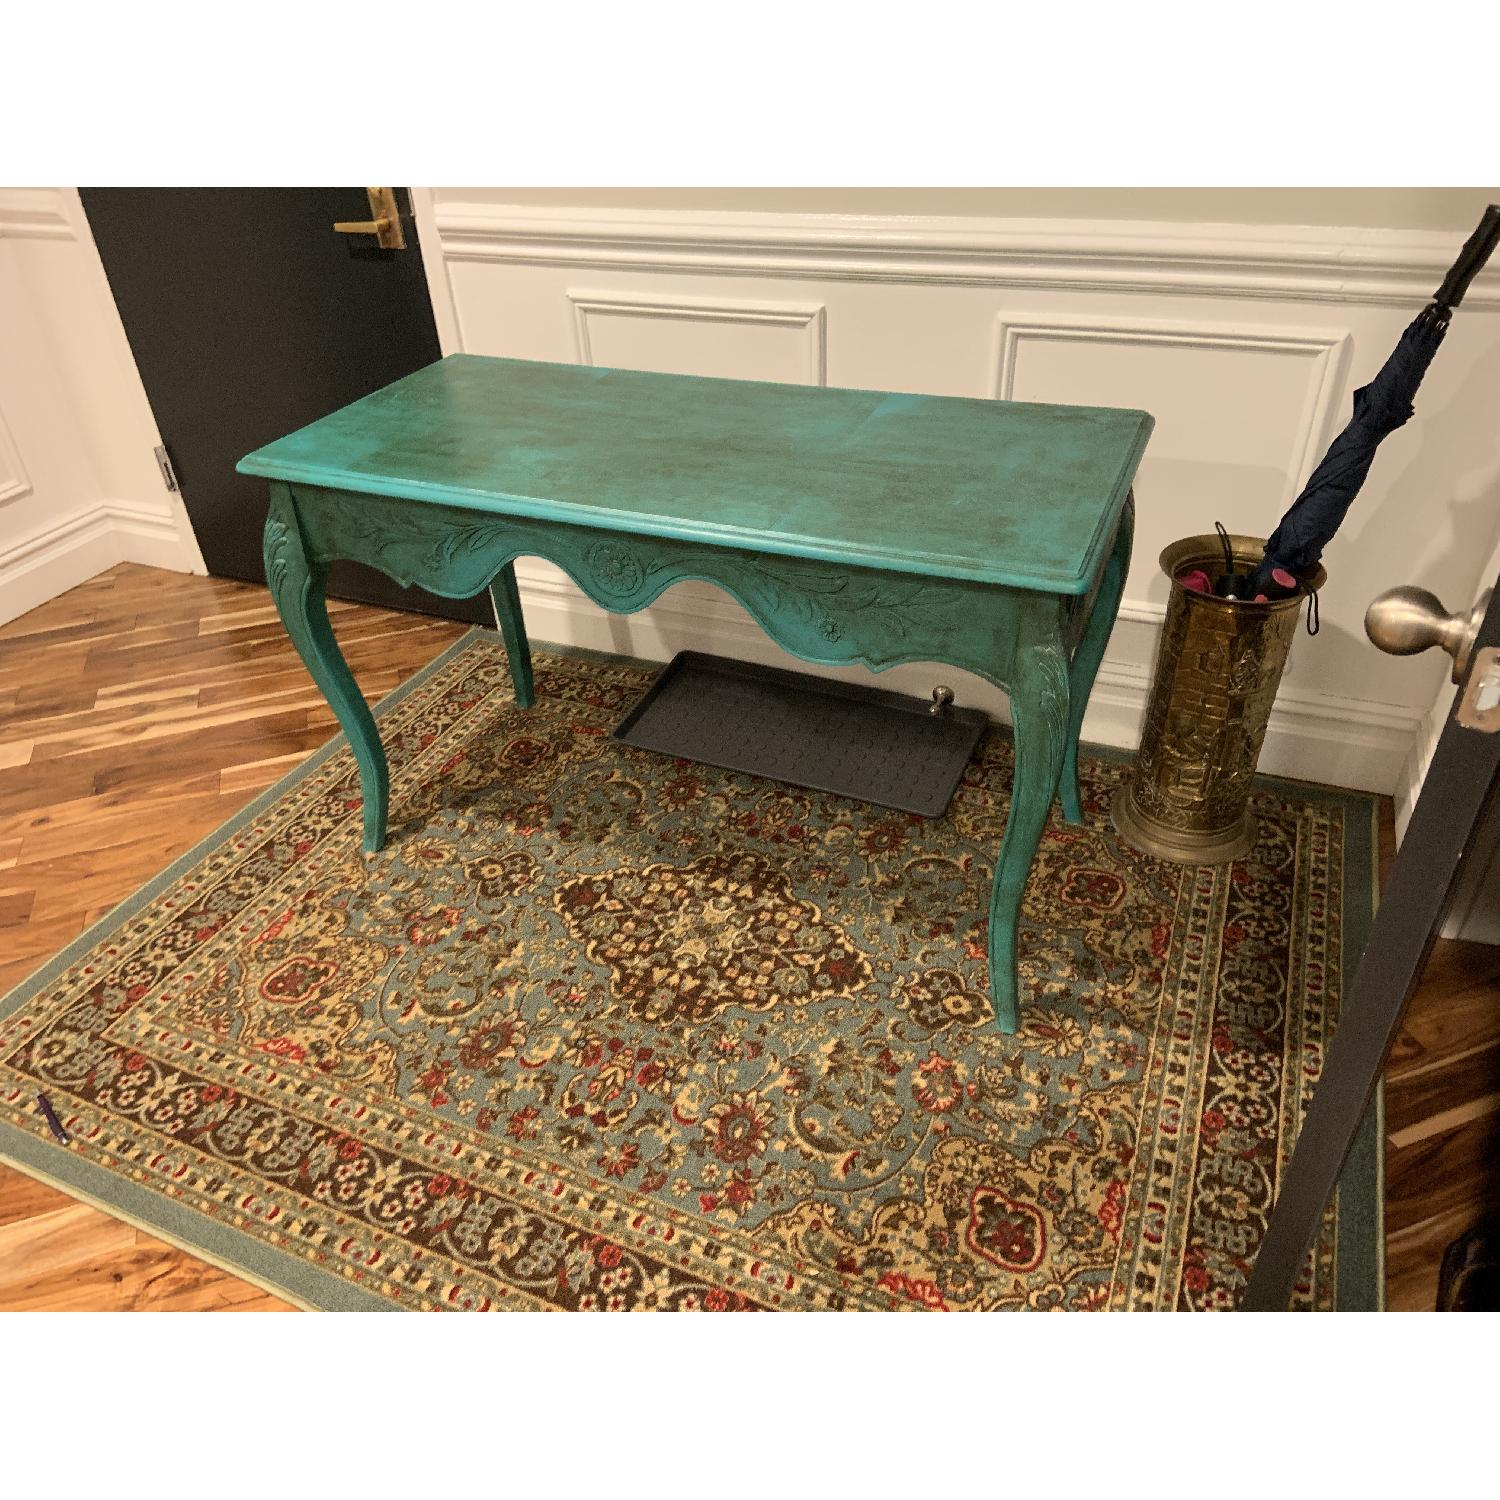 Vintage French Desk/Console/Entry Table-1